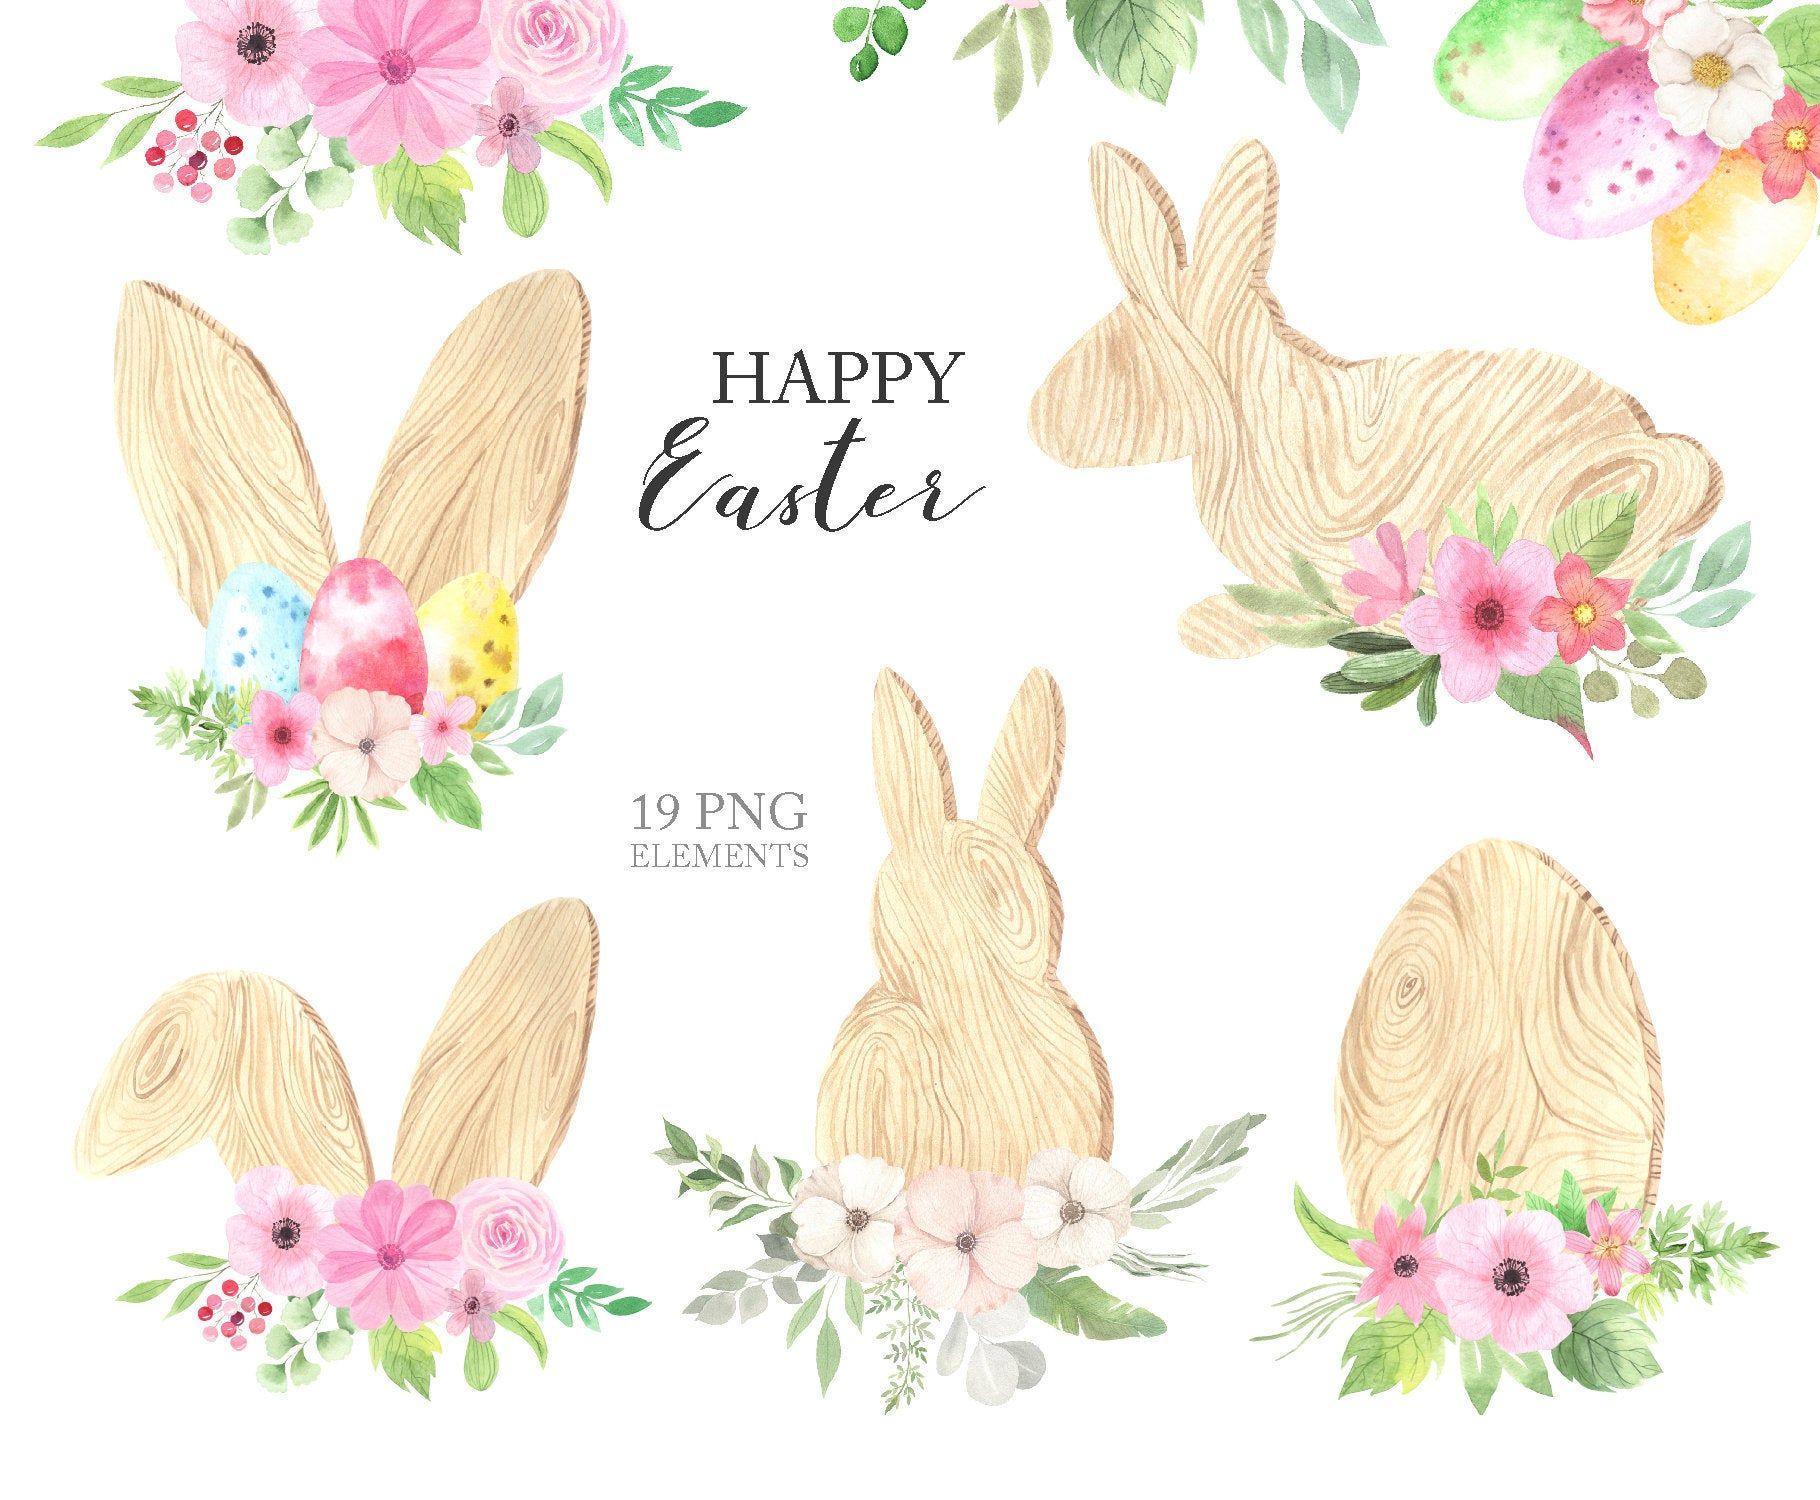 Watercolor Easter Bunny Ears Clipart Spring Holiday Wooden Etsy Easter Bunny Ears Easter Floral Wreath Drawing